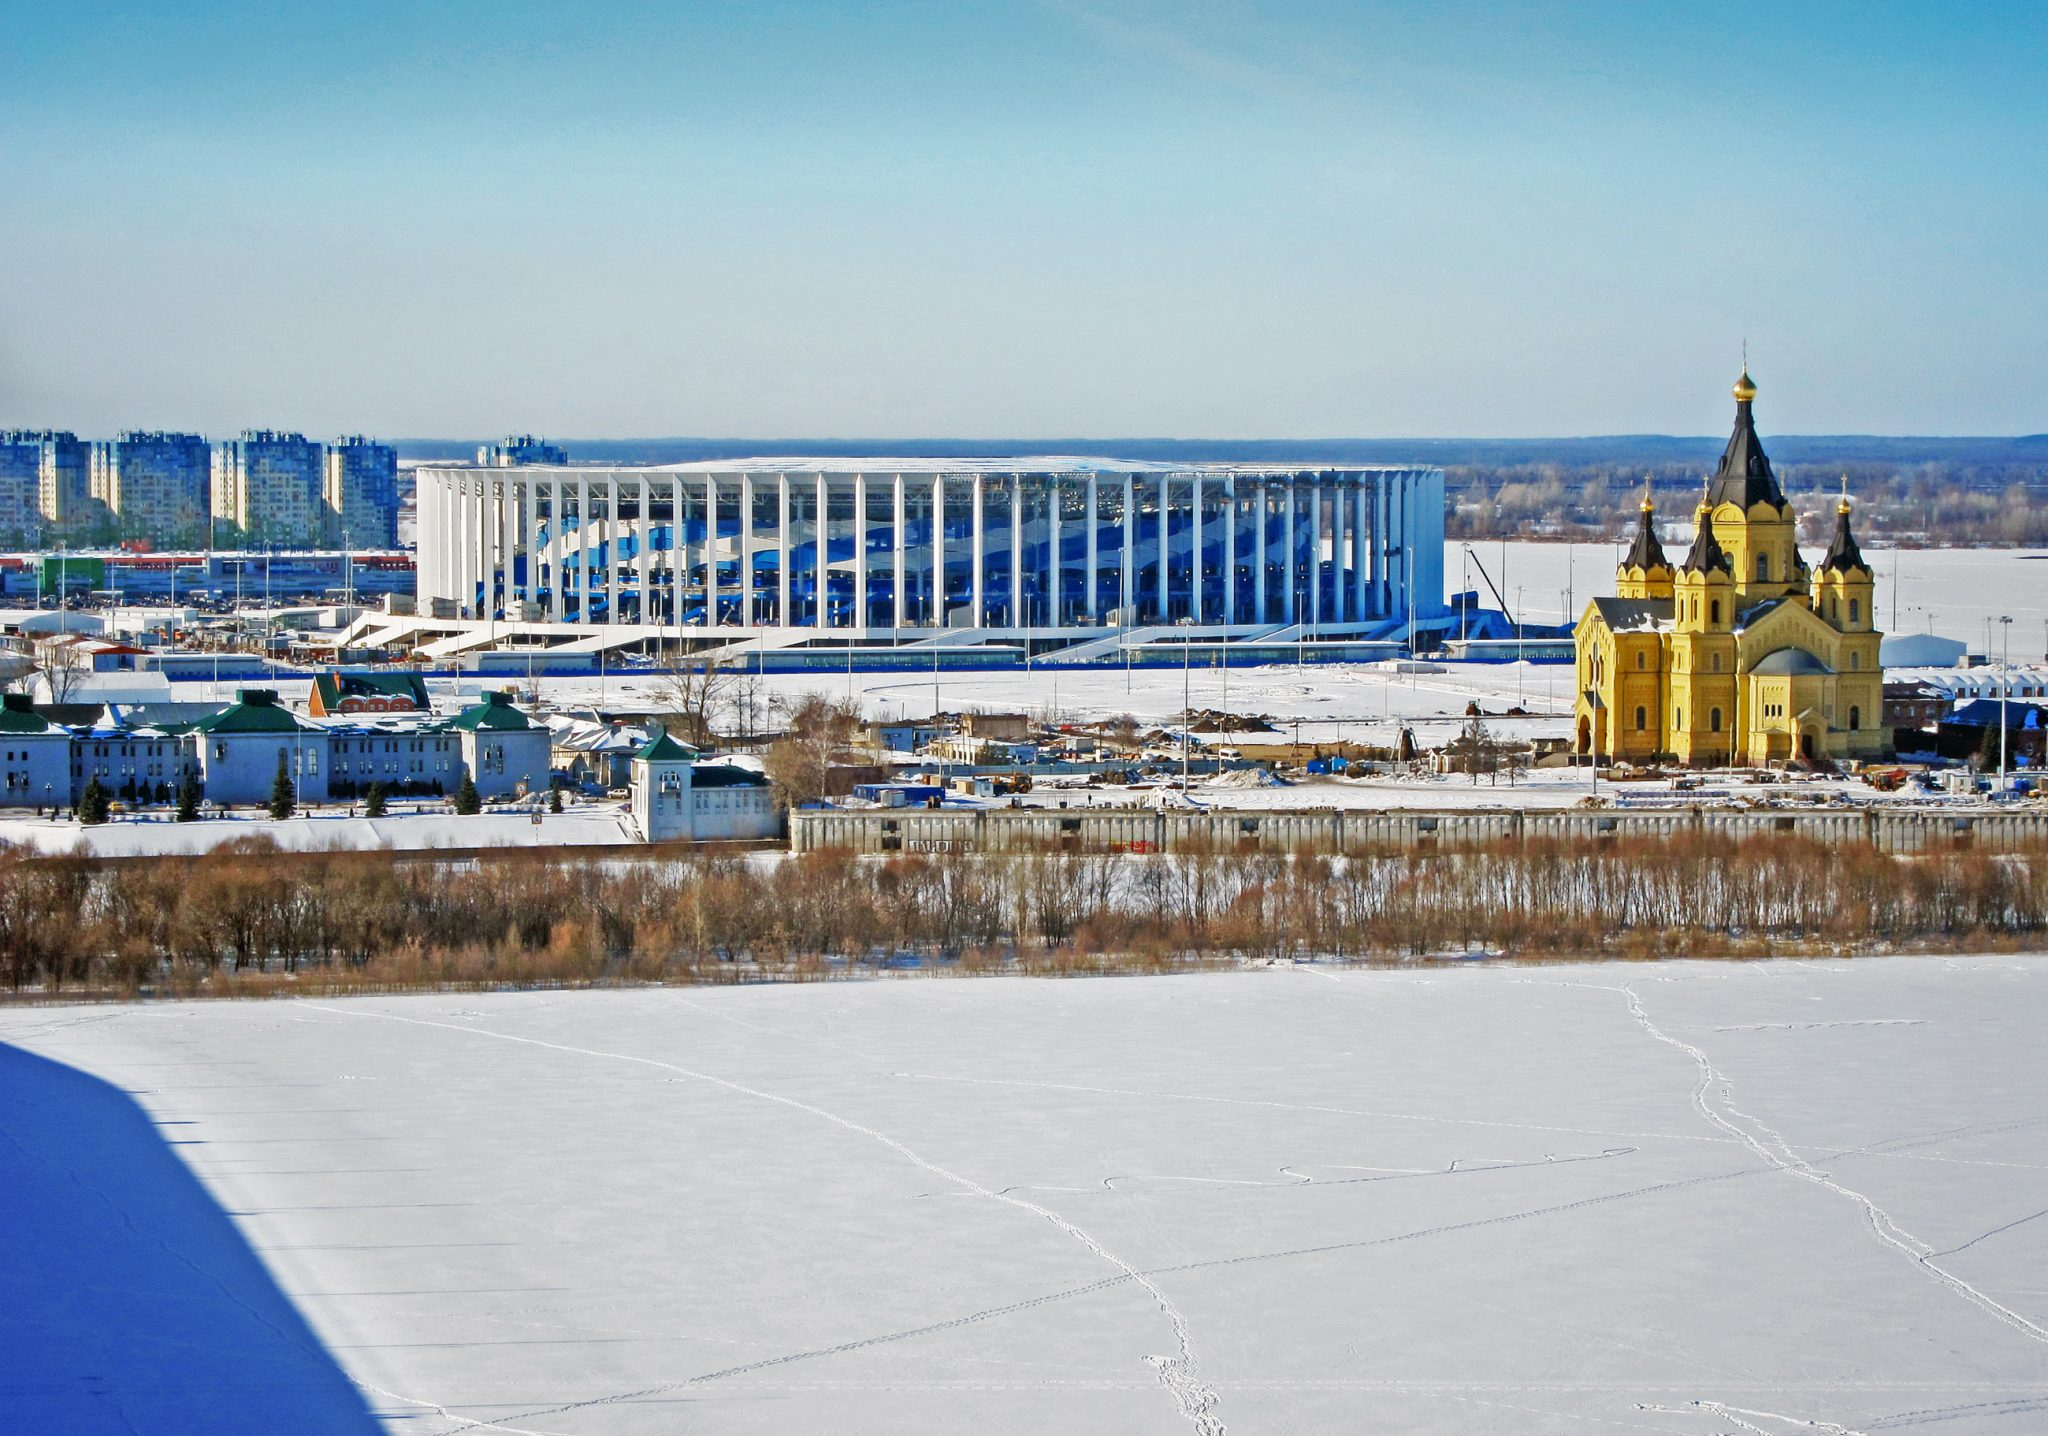 Nizhny Novgorod Stadium (March 2018)